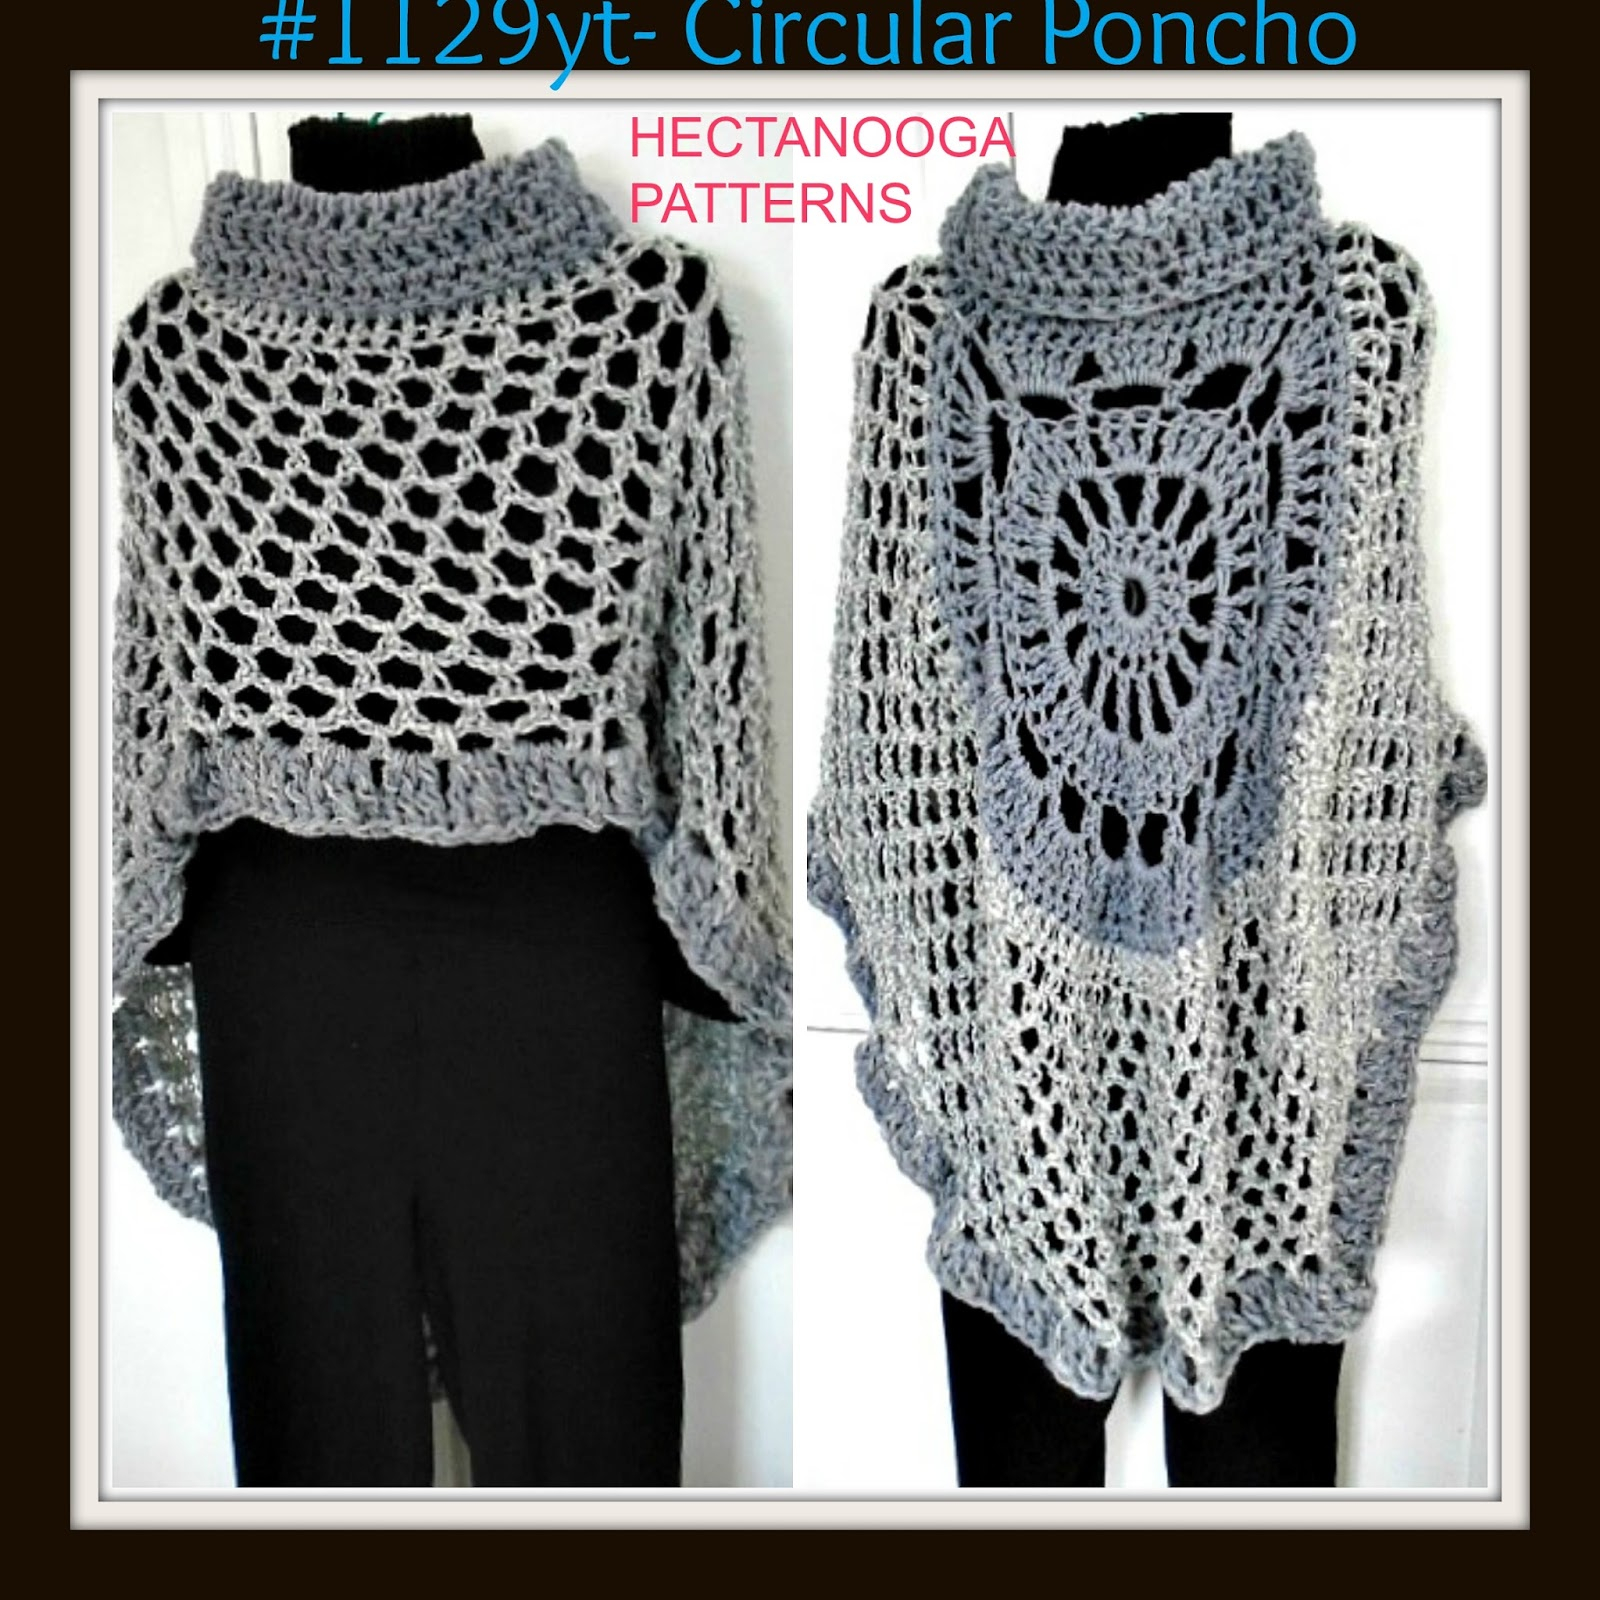 Crochet Patterns Free Hectanooga Patterns Free Crochet Pattern Asymmetrical Circular